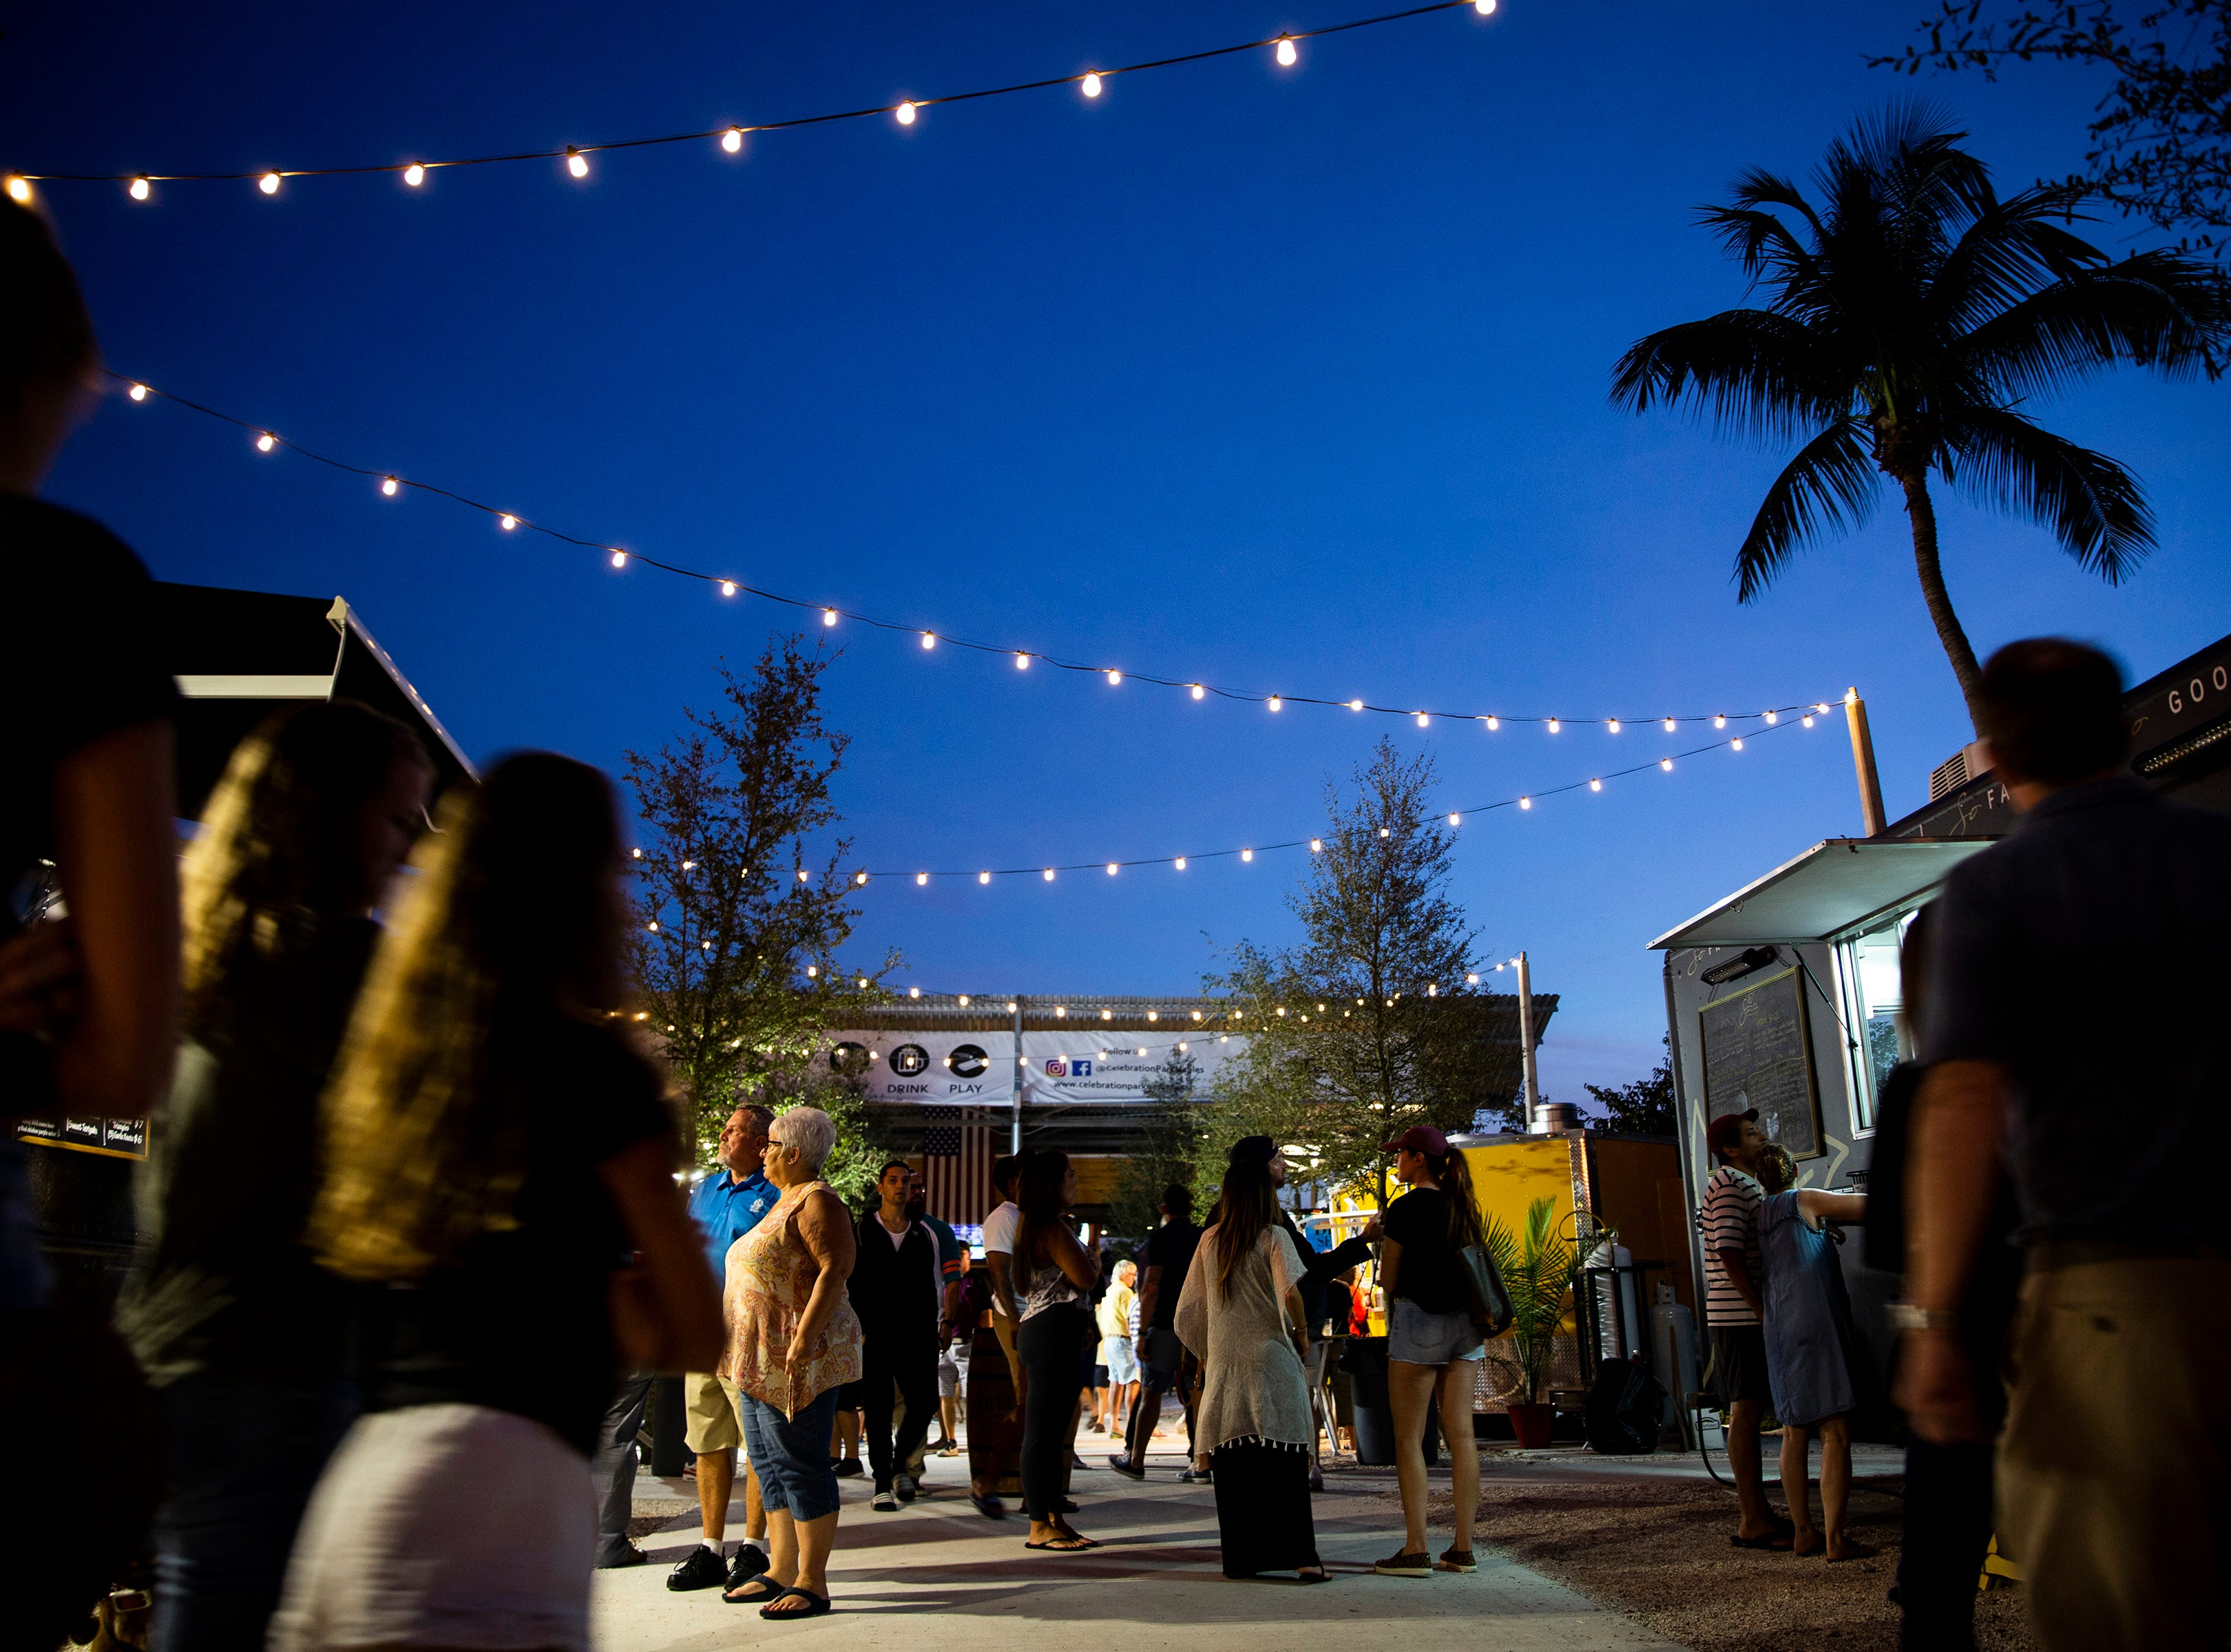 The long-awaited Celebration Park opened in November 2018 with eight food trucks, a full bar and more off Bayshore Drive in East Naples.